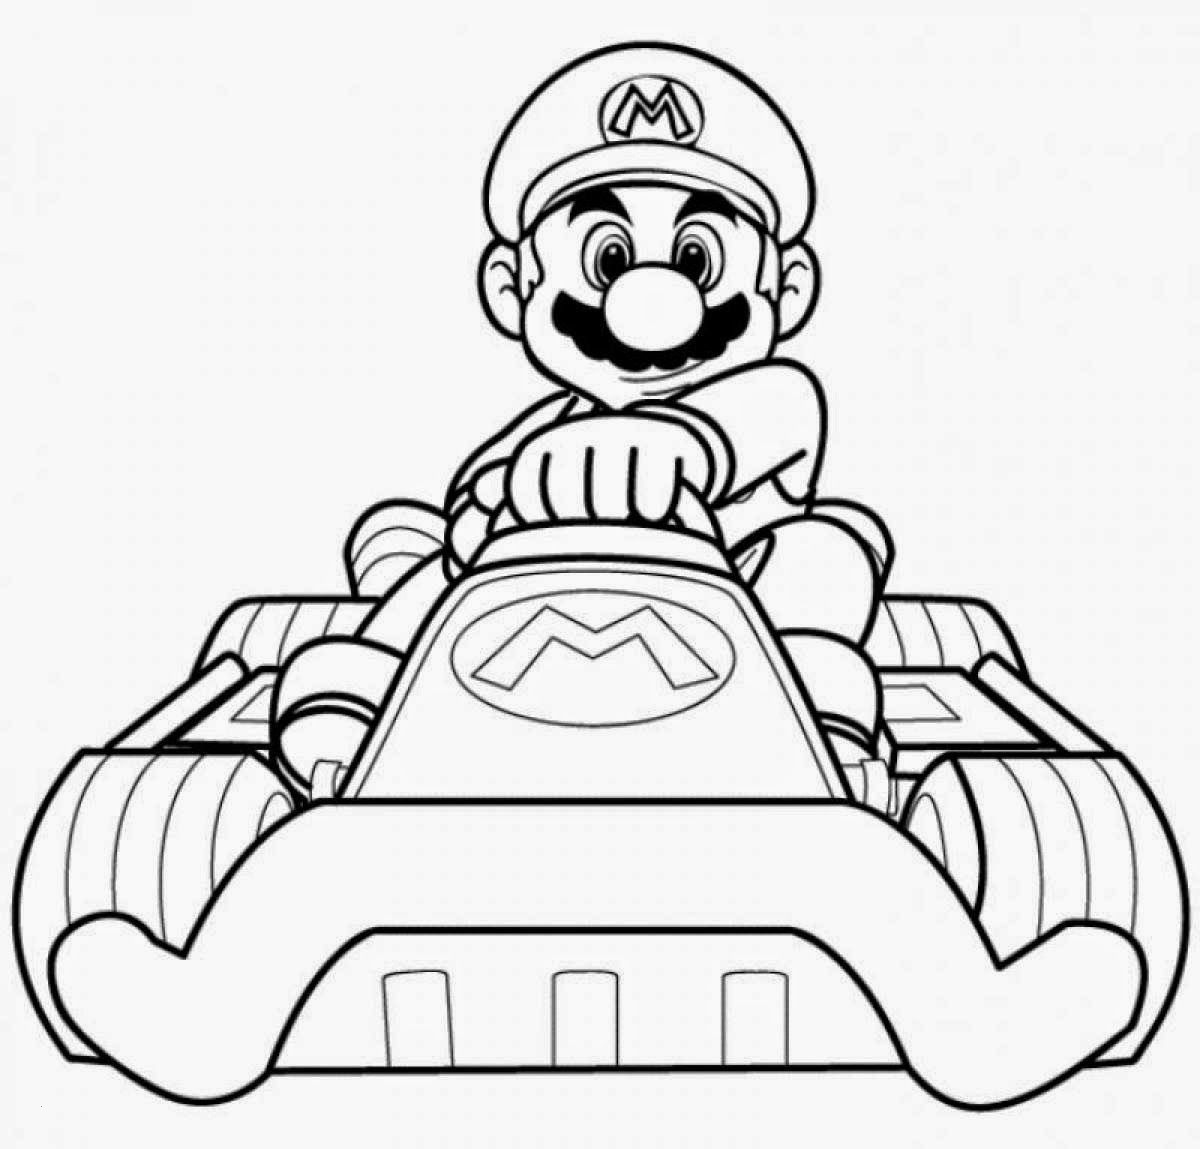 Donkey Kong Ausmalbilder Neu Unique Donkey Kong Coloring Pages Coloring Pages Luxus Mario Kart Bild